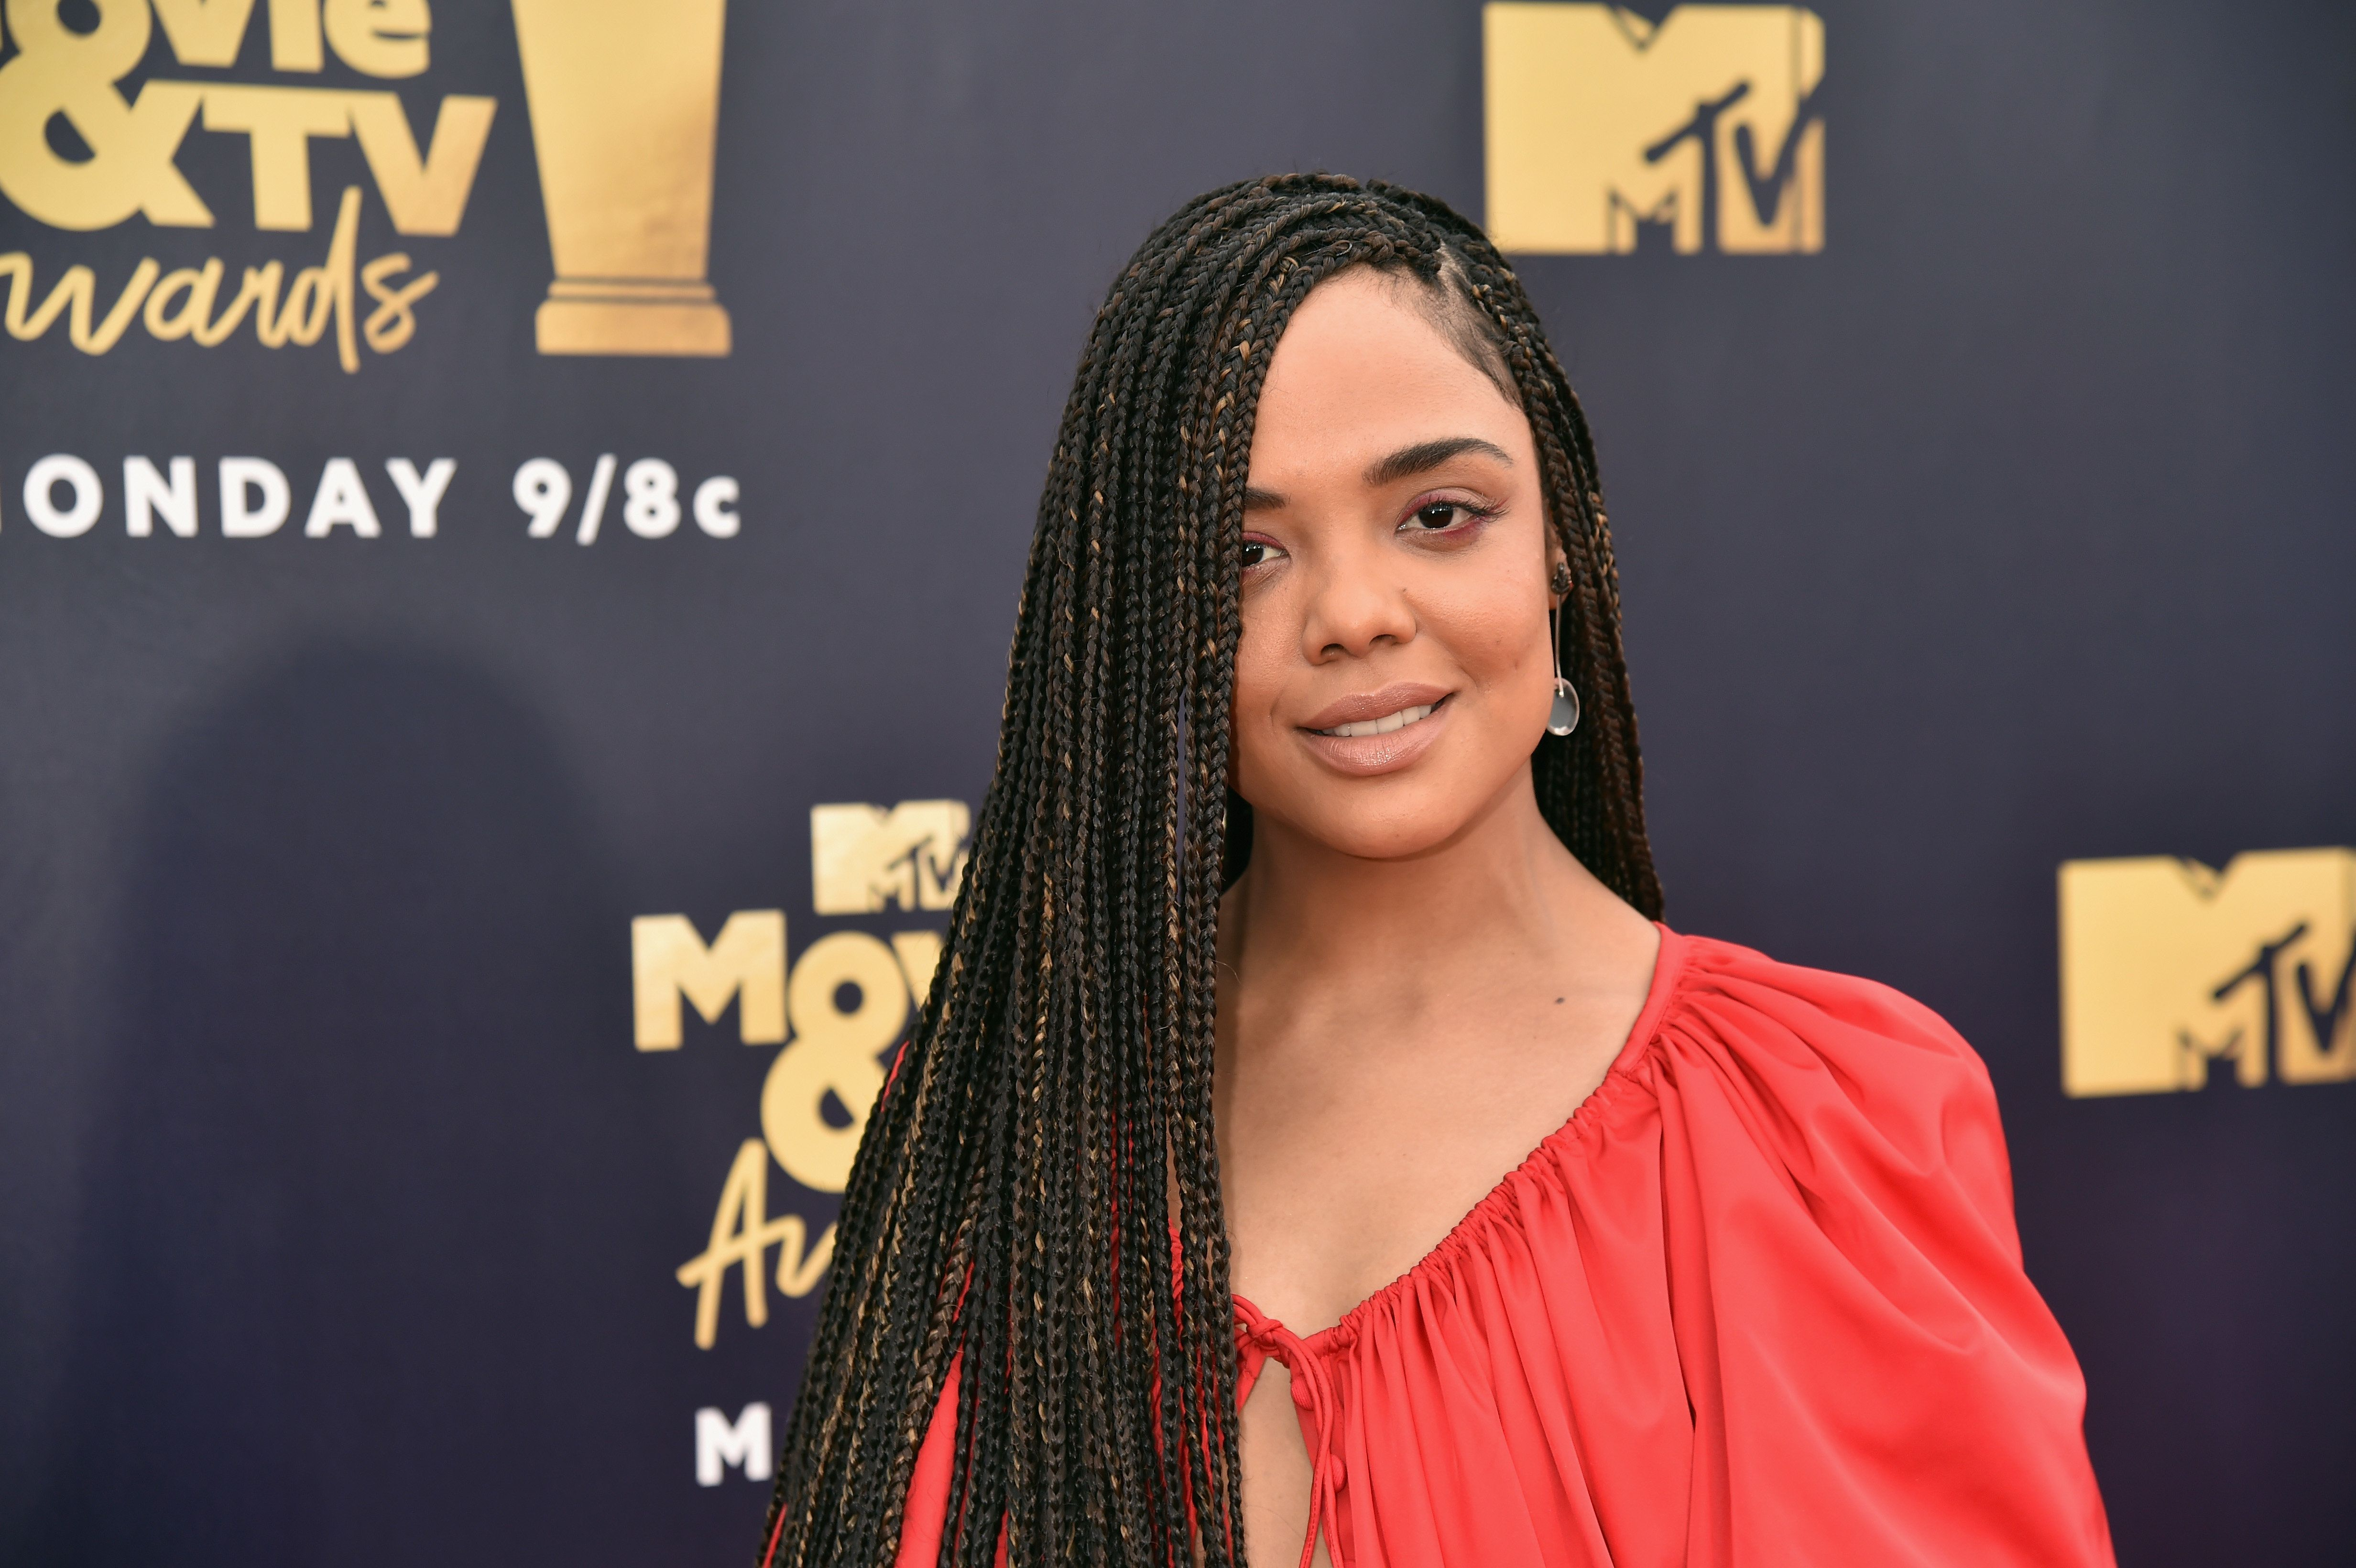 Fans Praise Tessa Thompson For Getting Candid About Her